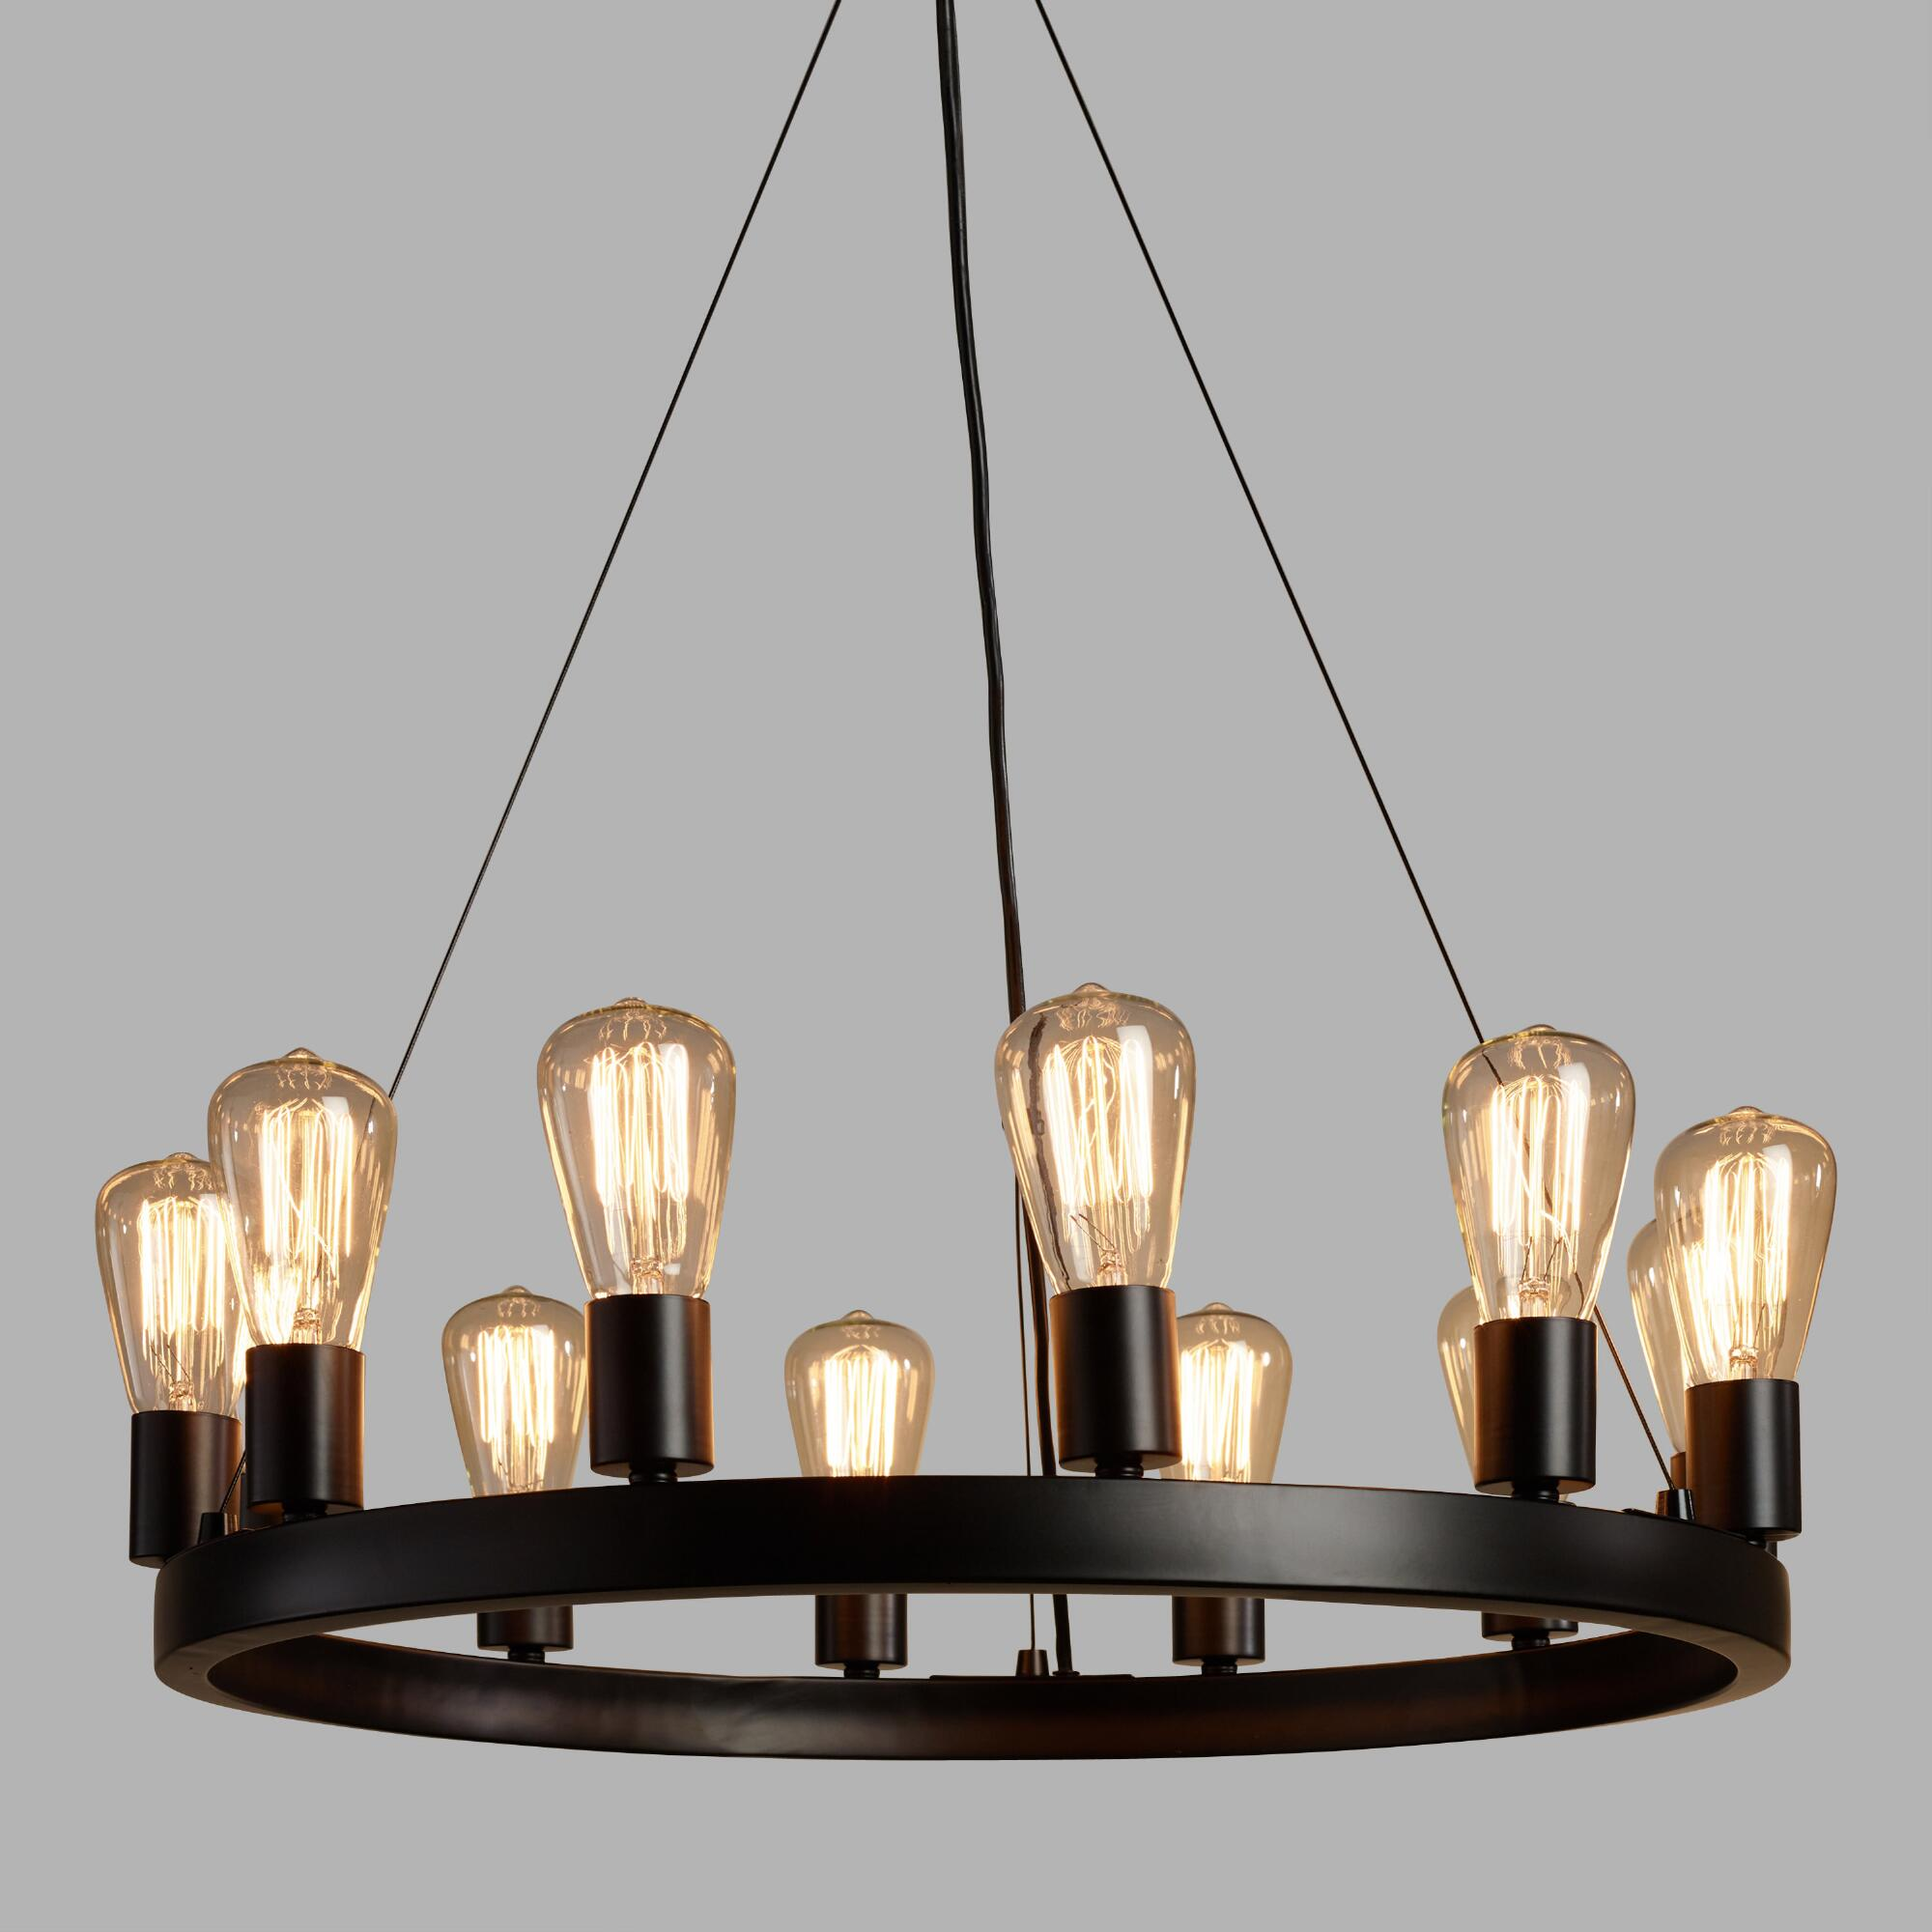 Pendant lighting light fixtures chandeliers world market round 12 light edison bulb chandelier arubaitofo Gallery